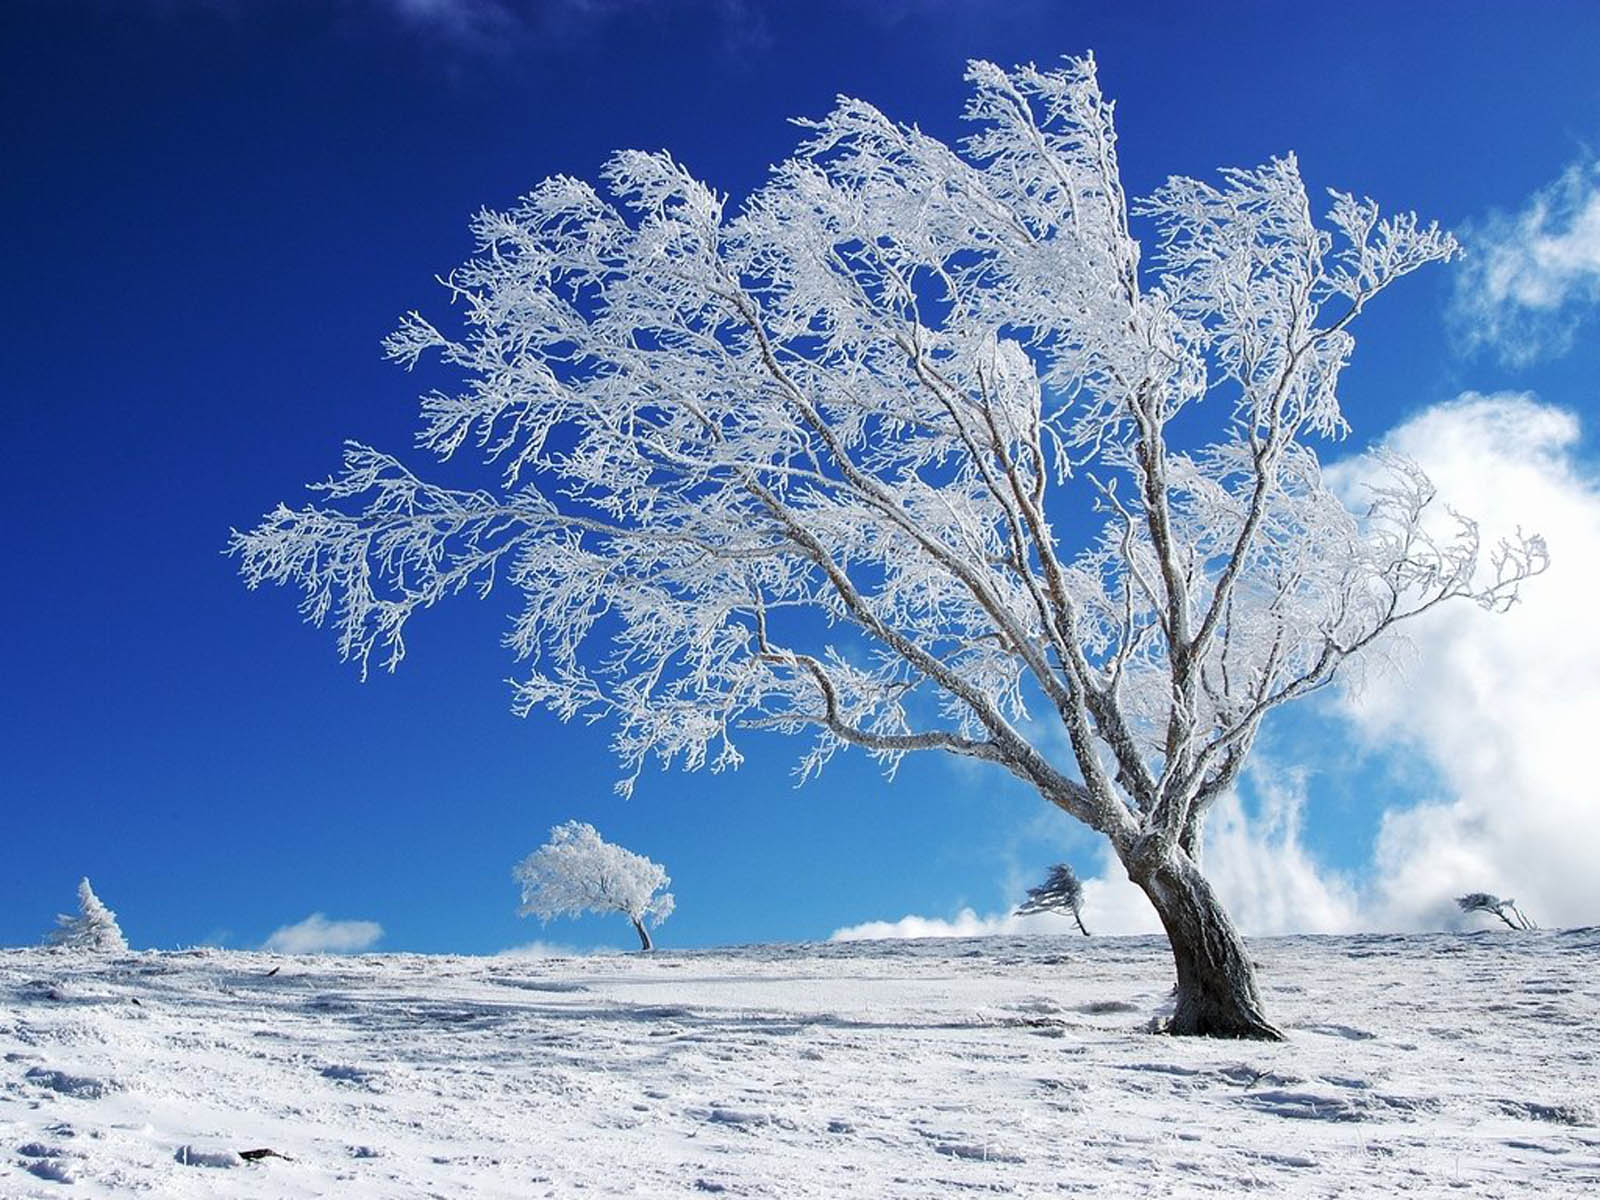 Winter Backgrounds download 1600x1200